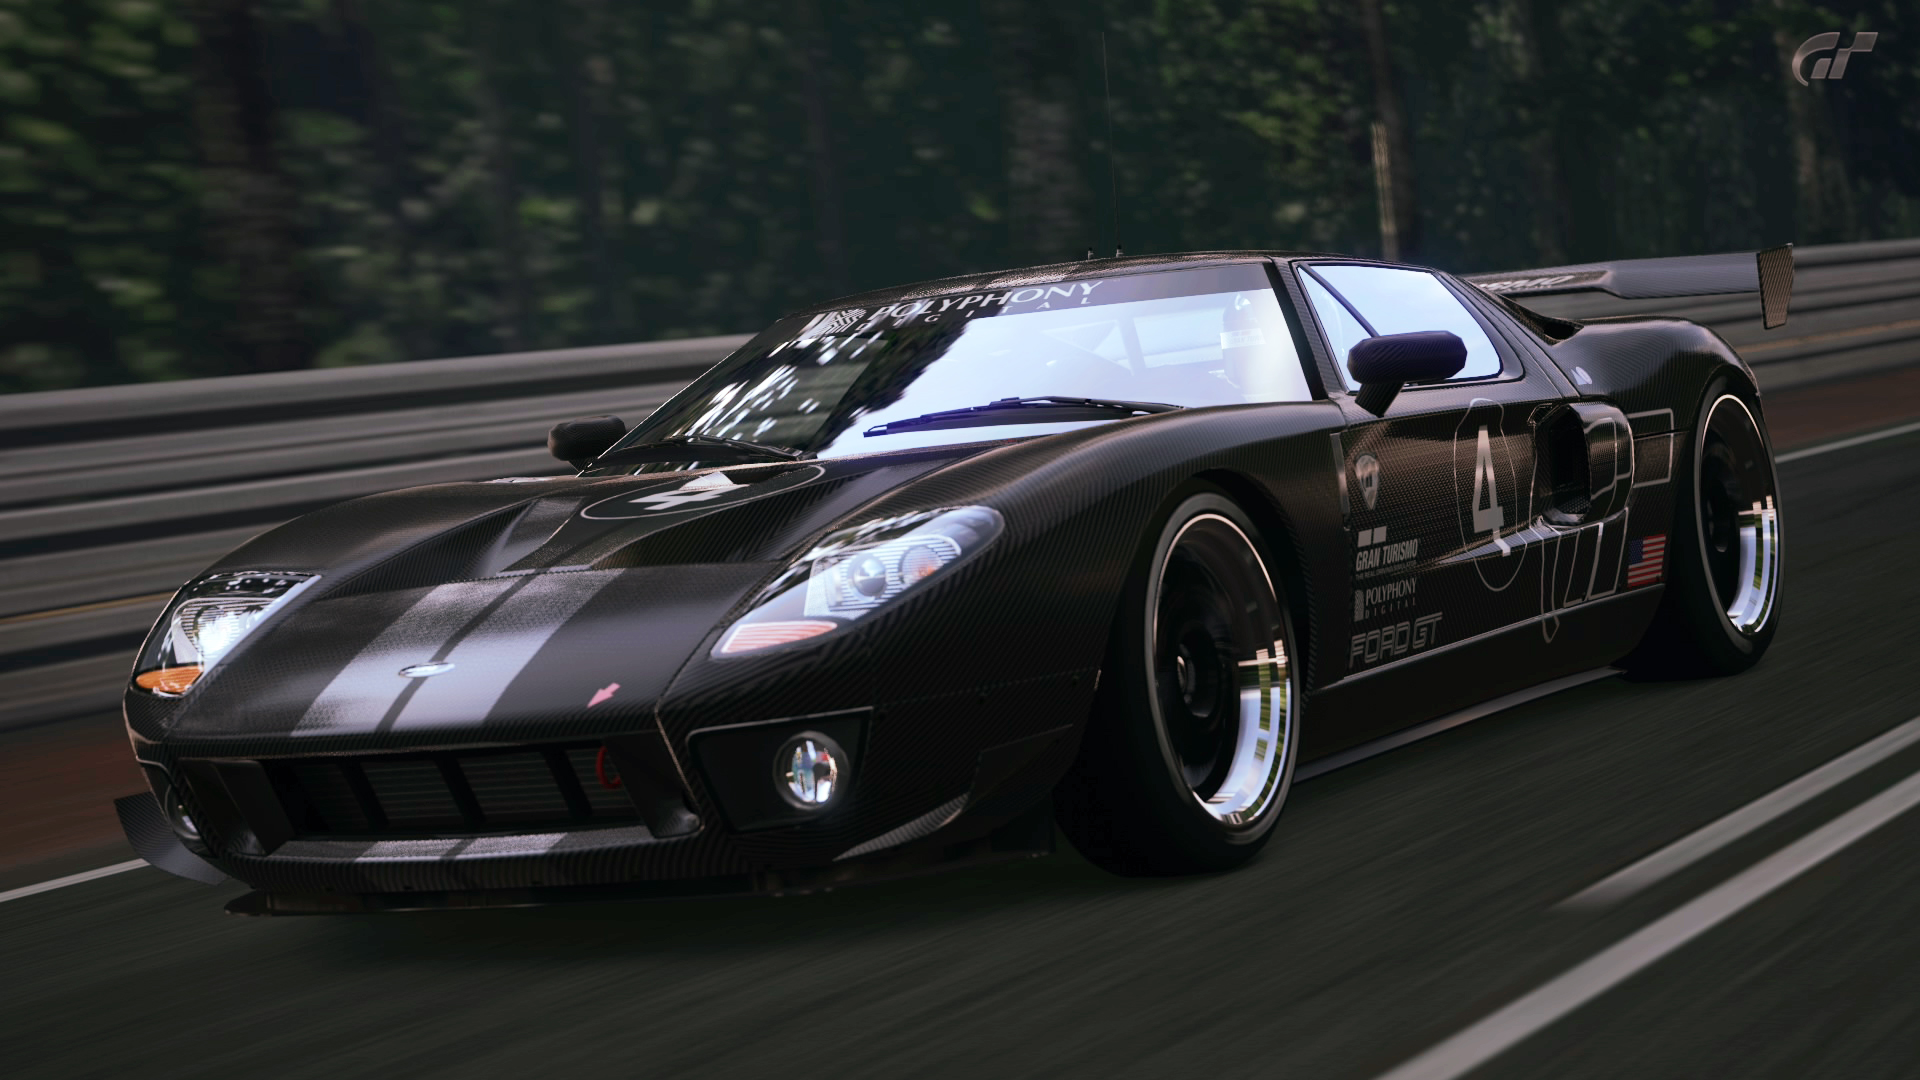 2006 Ford GT LM Spec II Test Car (Gran Turismo 5) by